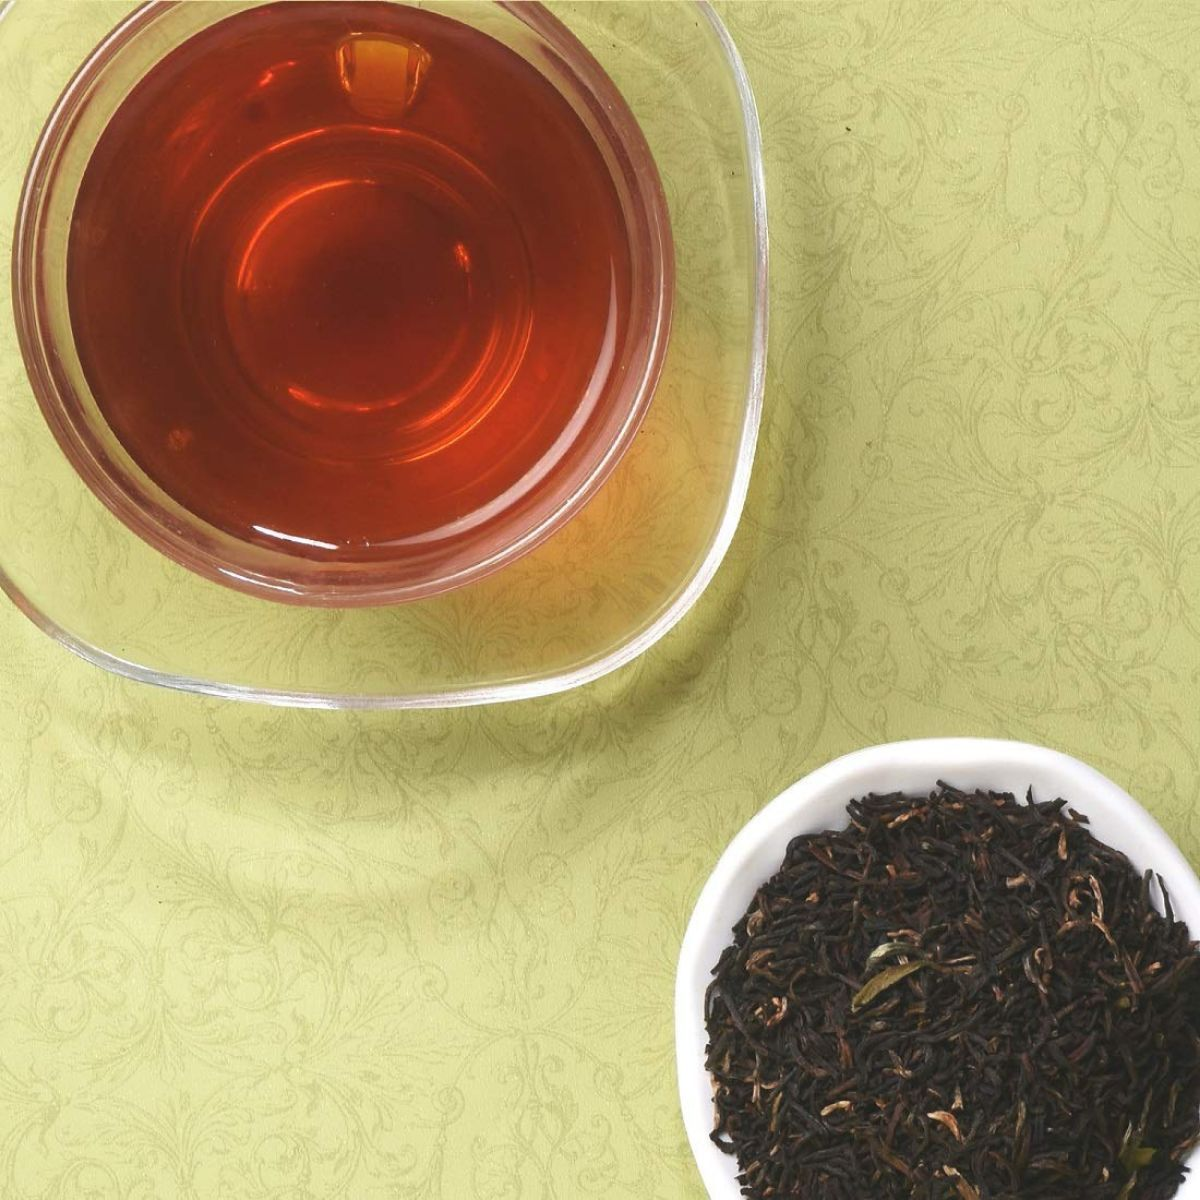 Black Tea (Caramel with hint of Cocoa and Peach) (30 Cups)